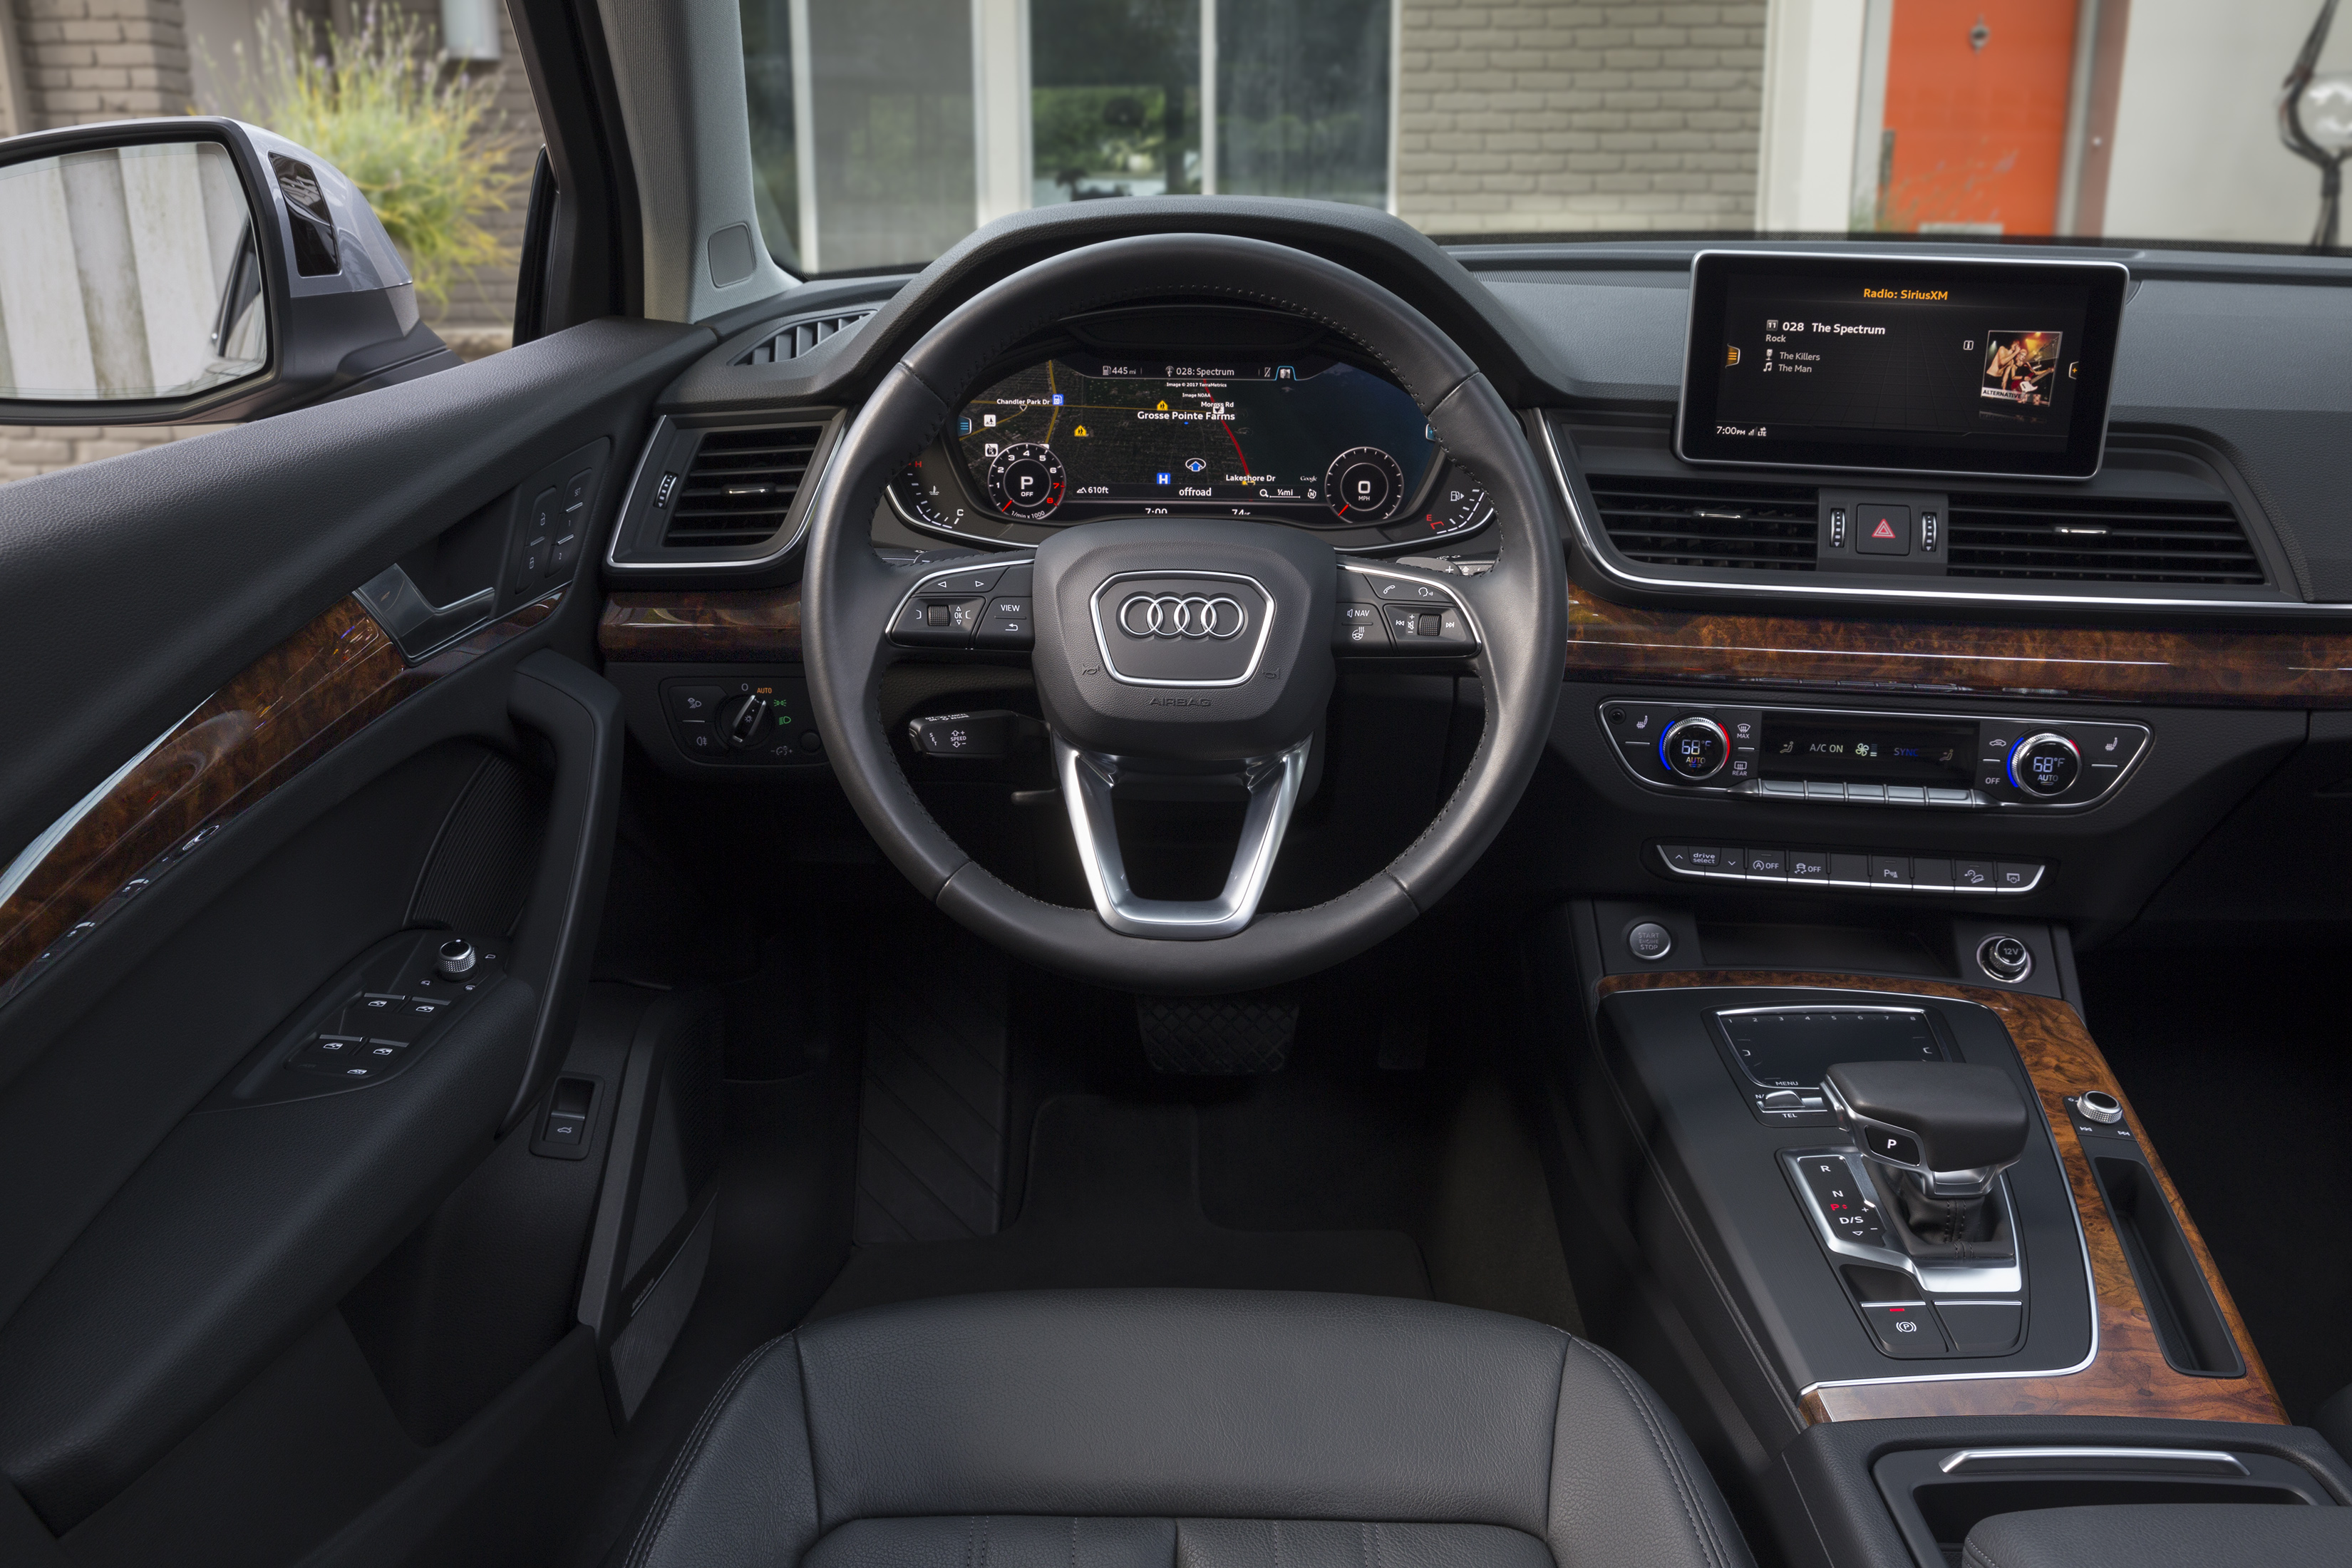 2018 audi q5 named one of autotrader 39 s 10 best car interiors. Black Bedroom Furniture Sets. Home Design Ideas